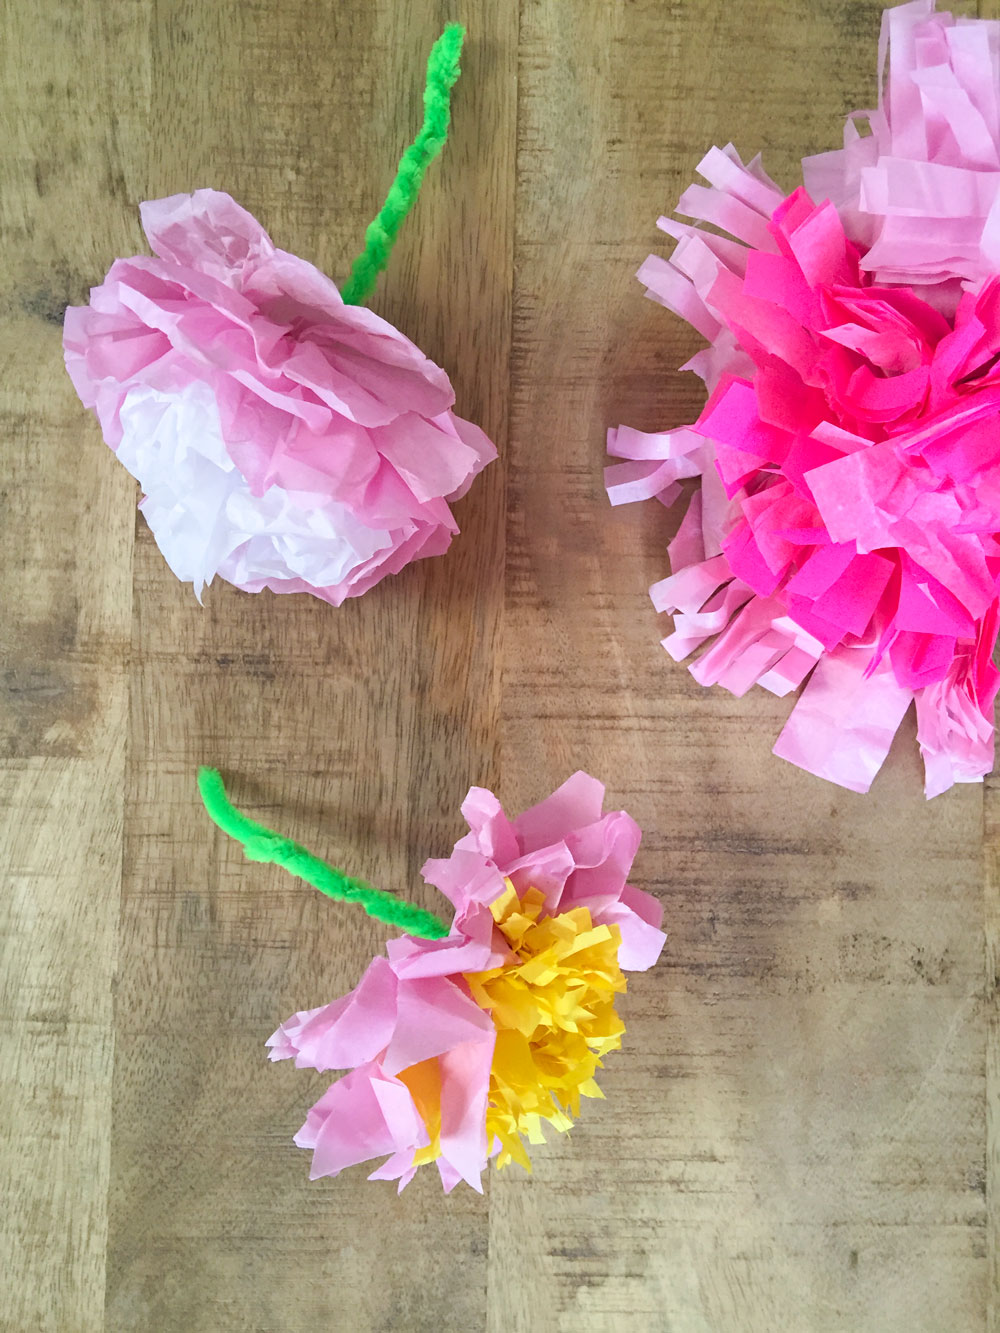 Tissue Paper Flowers Babyccino Kids Daily Tips Childrens Products